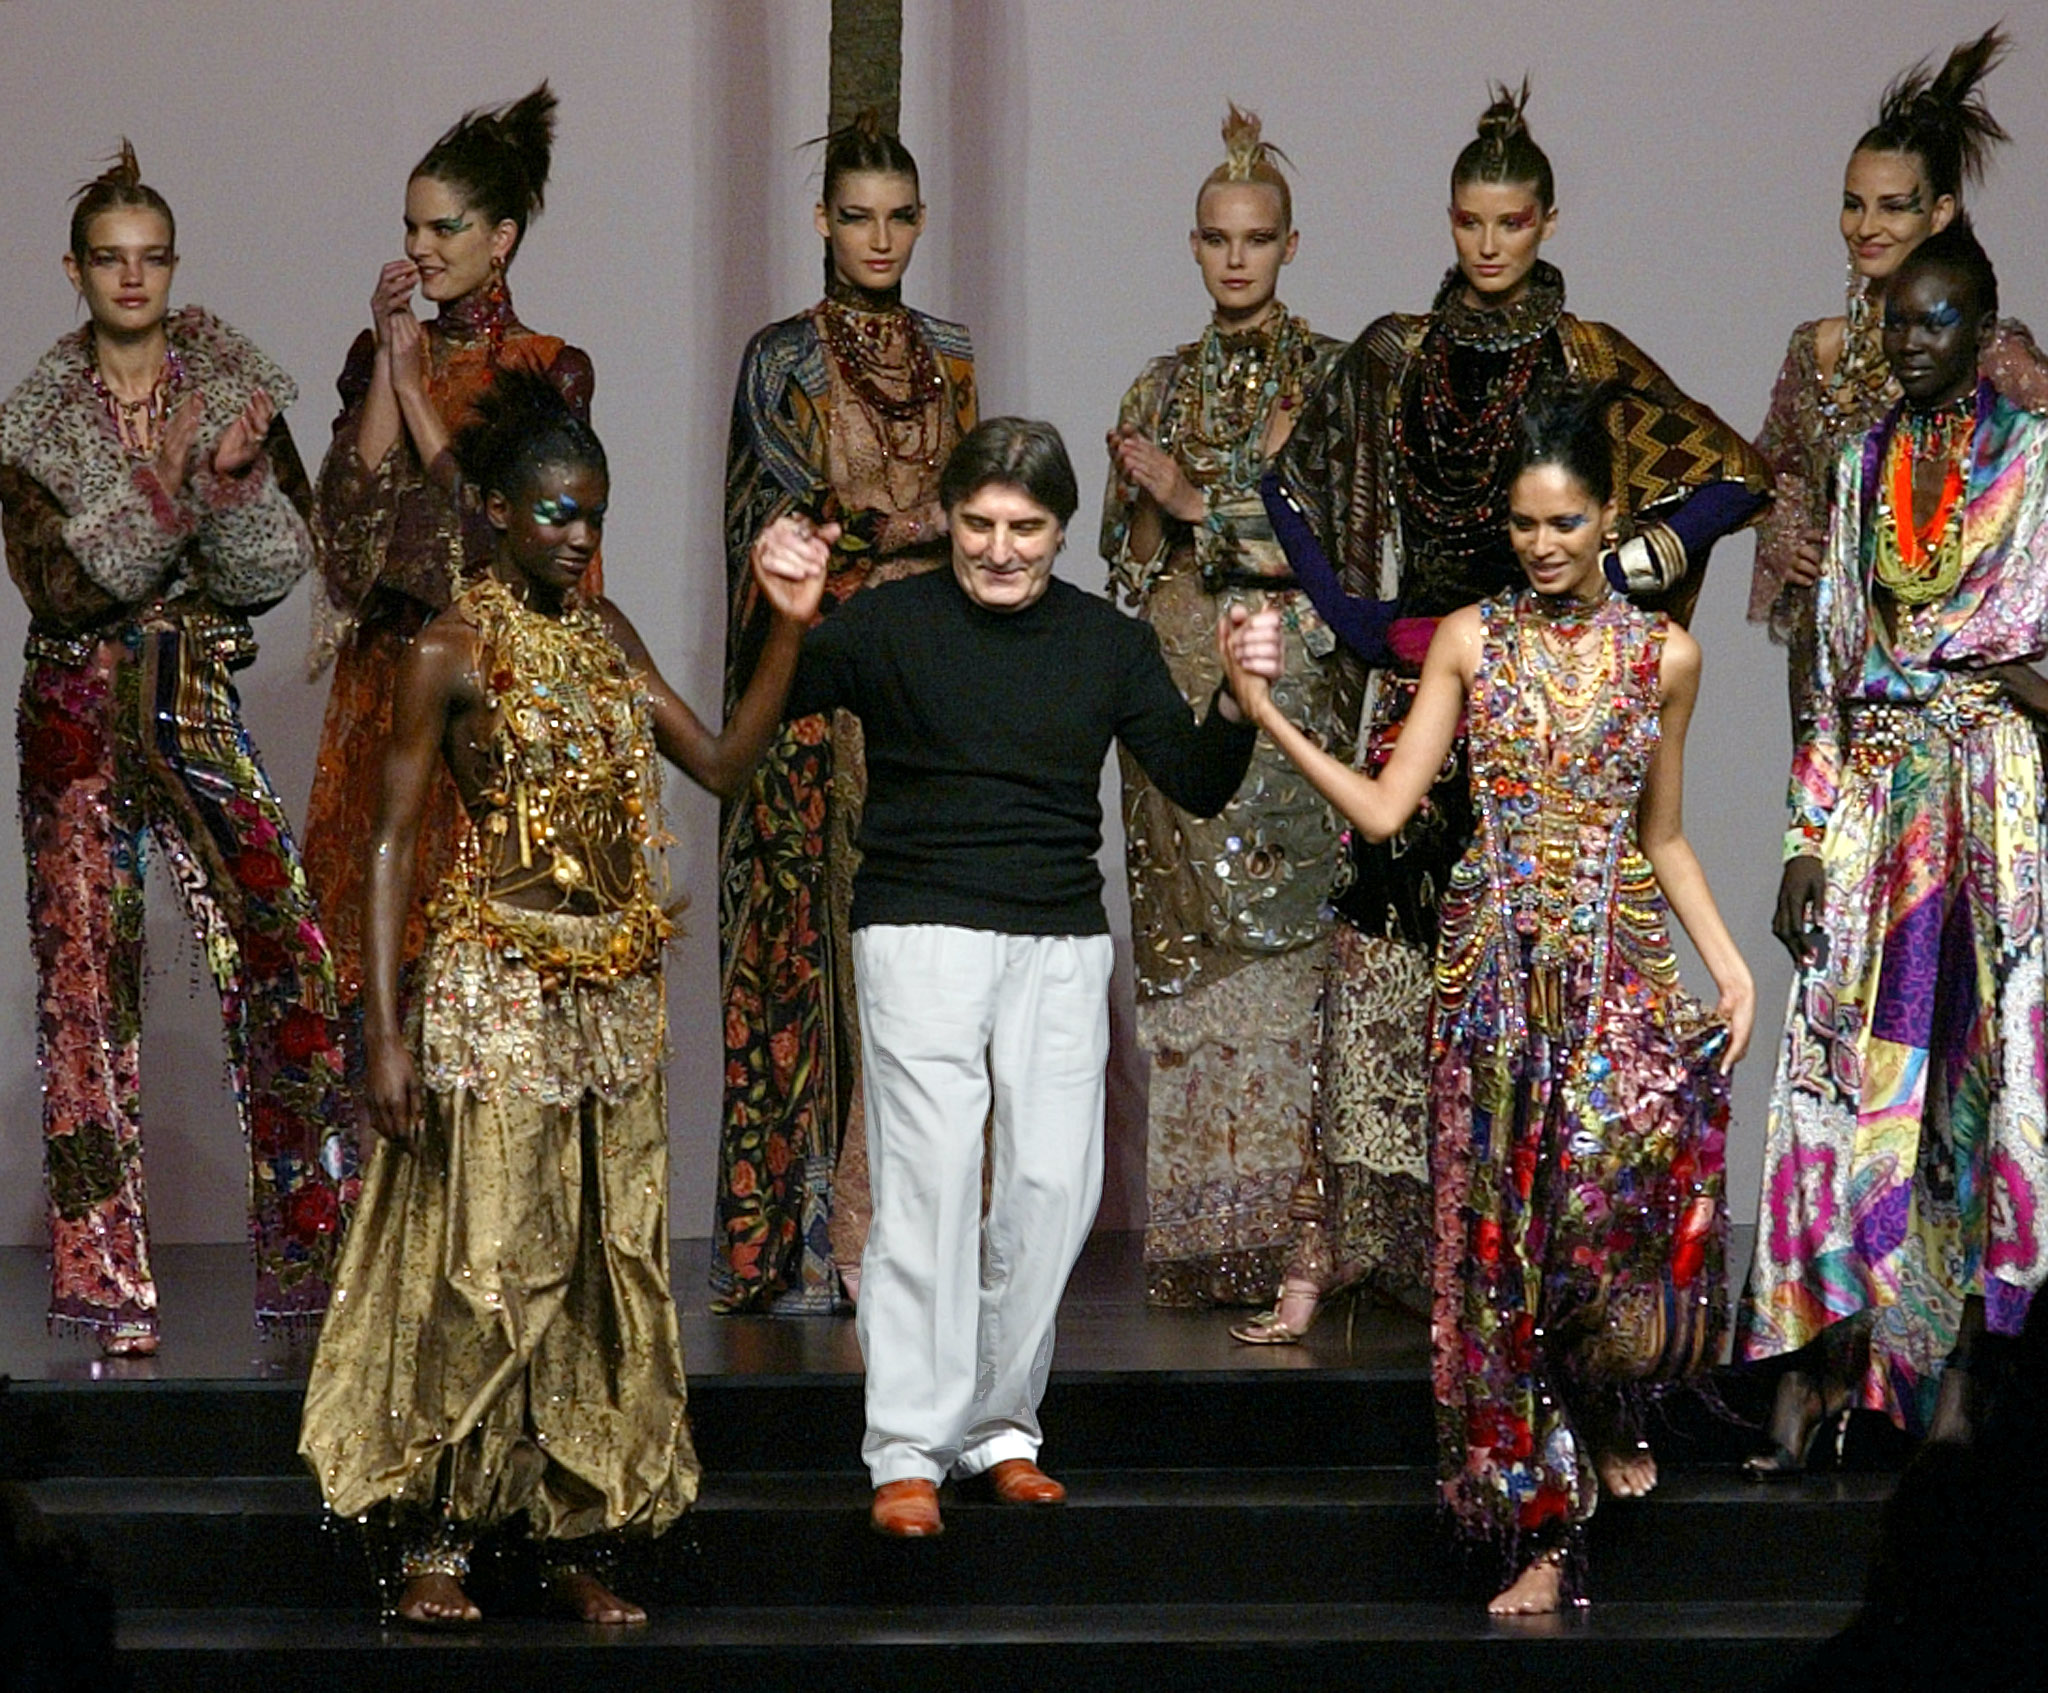 French designer Emanuel Ungaro appears with his models at the end of his Autumn-Winter 2002-2003 high fashion collection in Paris July 10, 2002. The Paris fashion collections run through July 11. REUTERS/Philippe Wojazer  MAL/ - RP3DRHXQWTAC